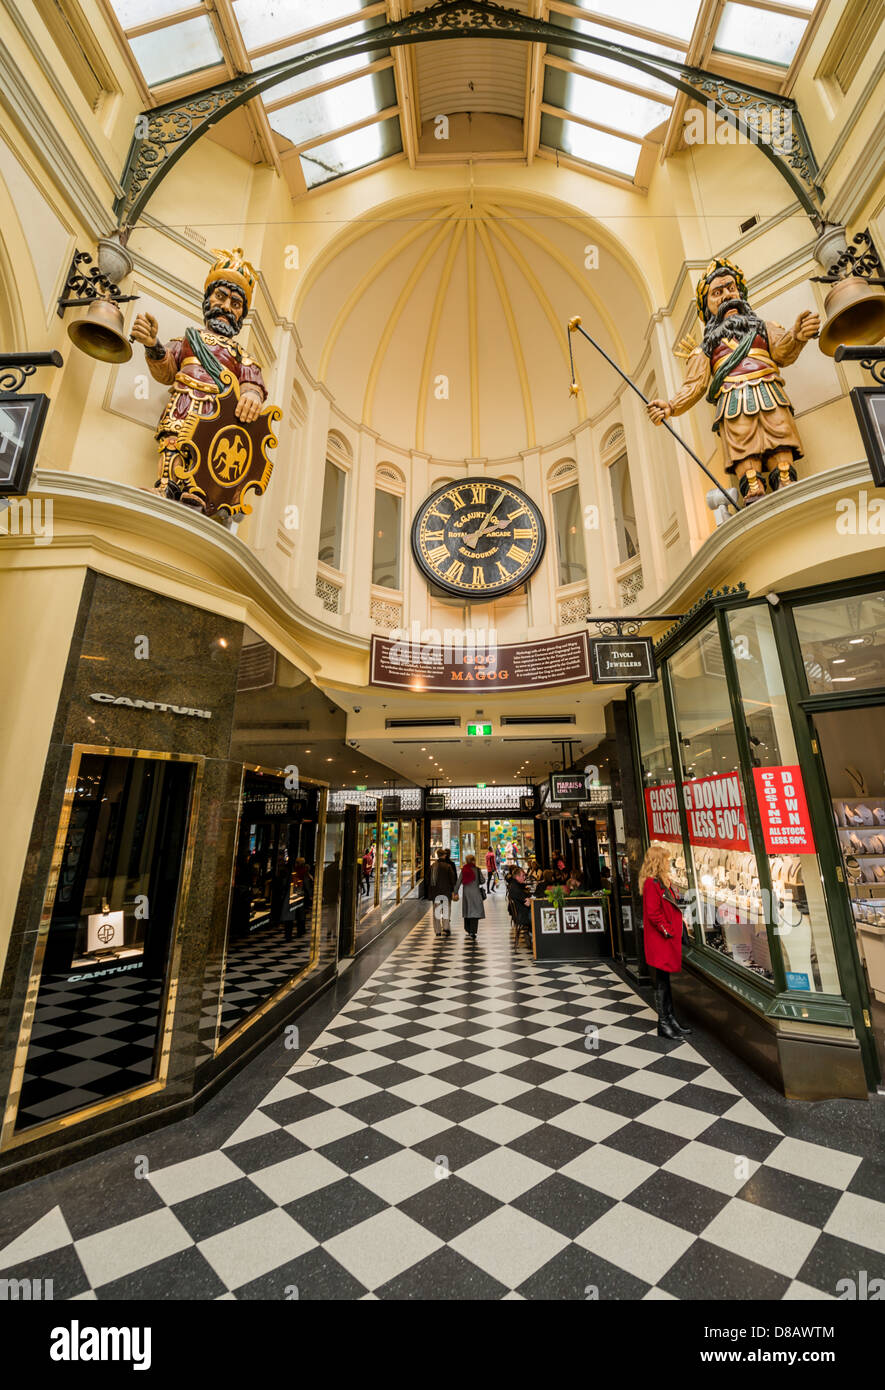 The ornate Royal Arcade in downtown Melbourne Australia. - Stock Image